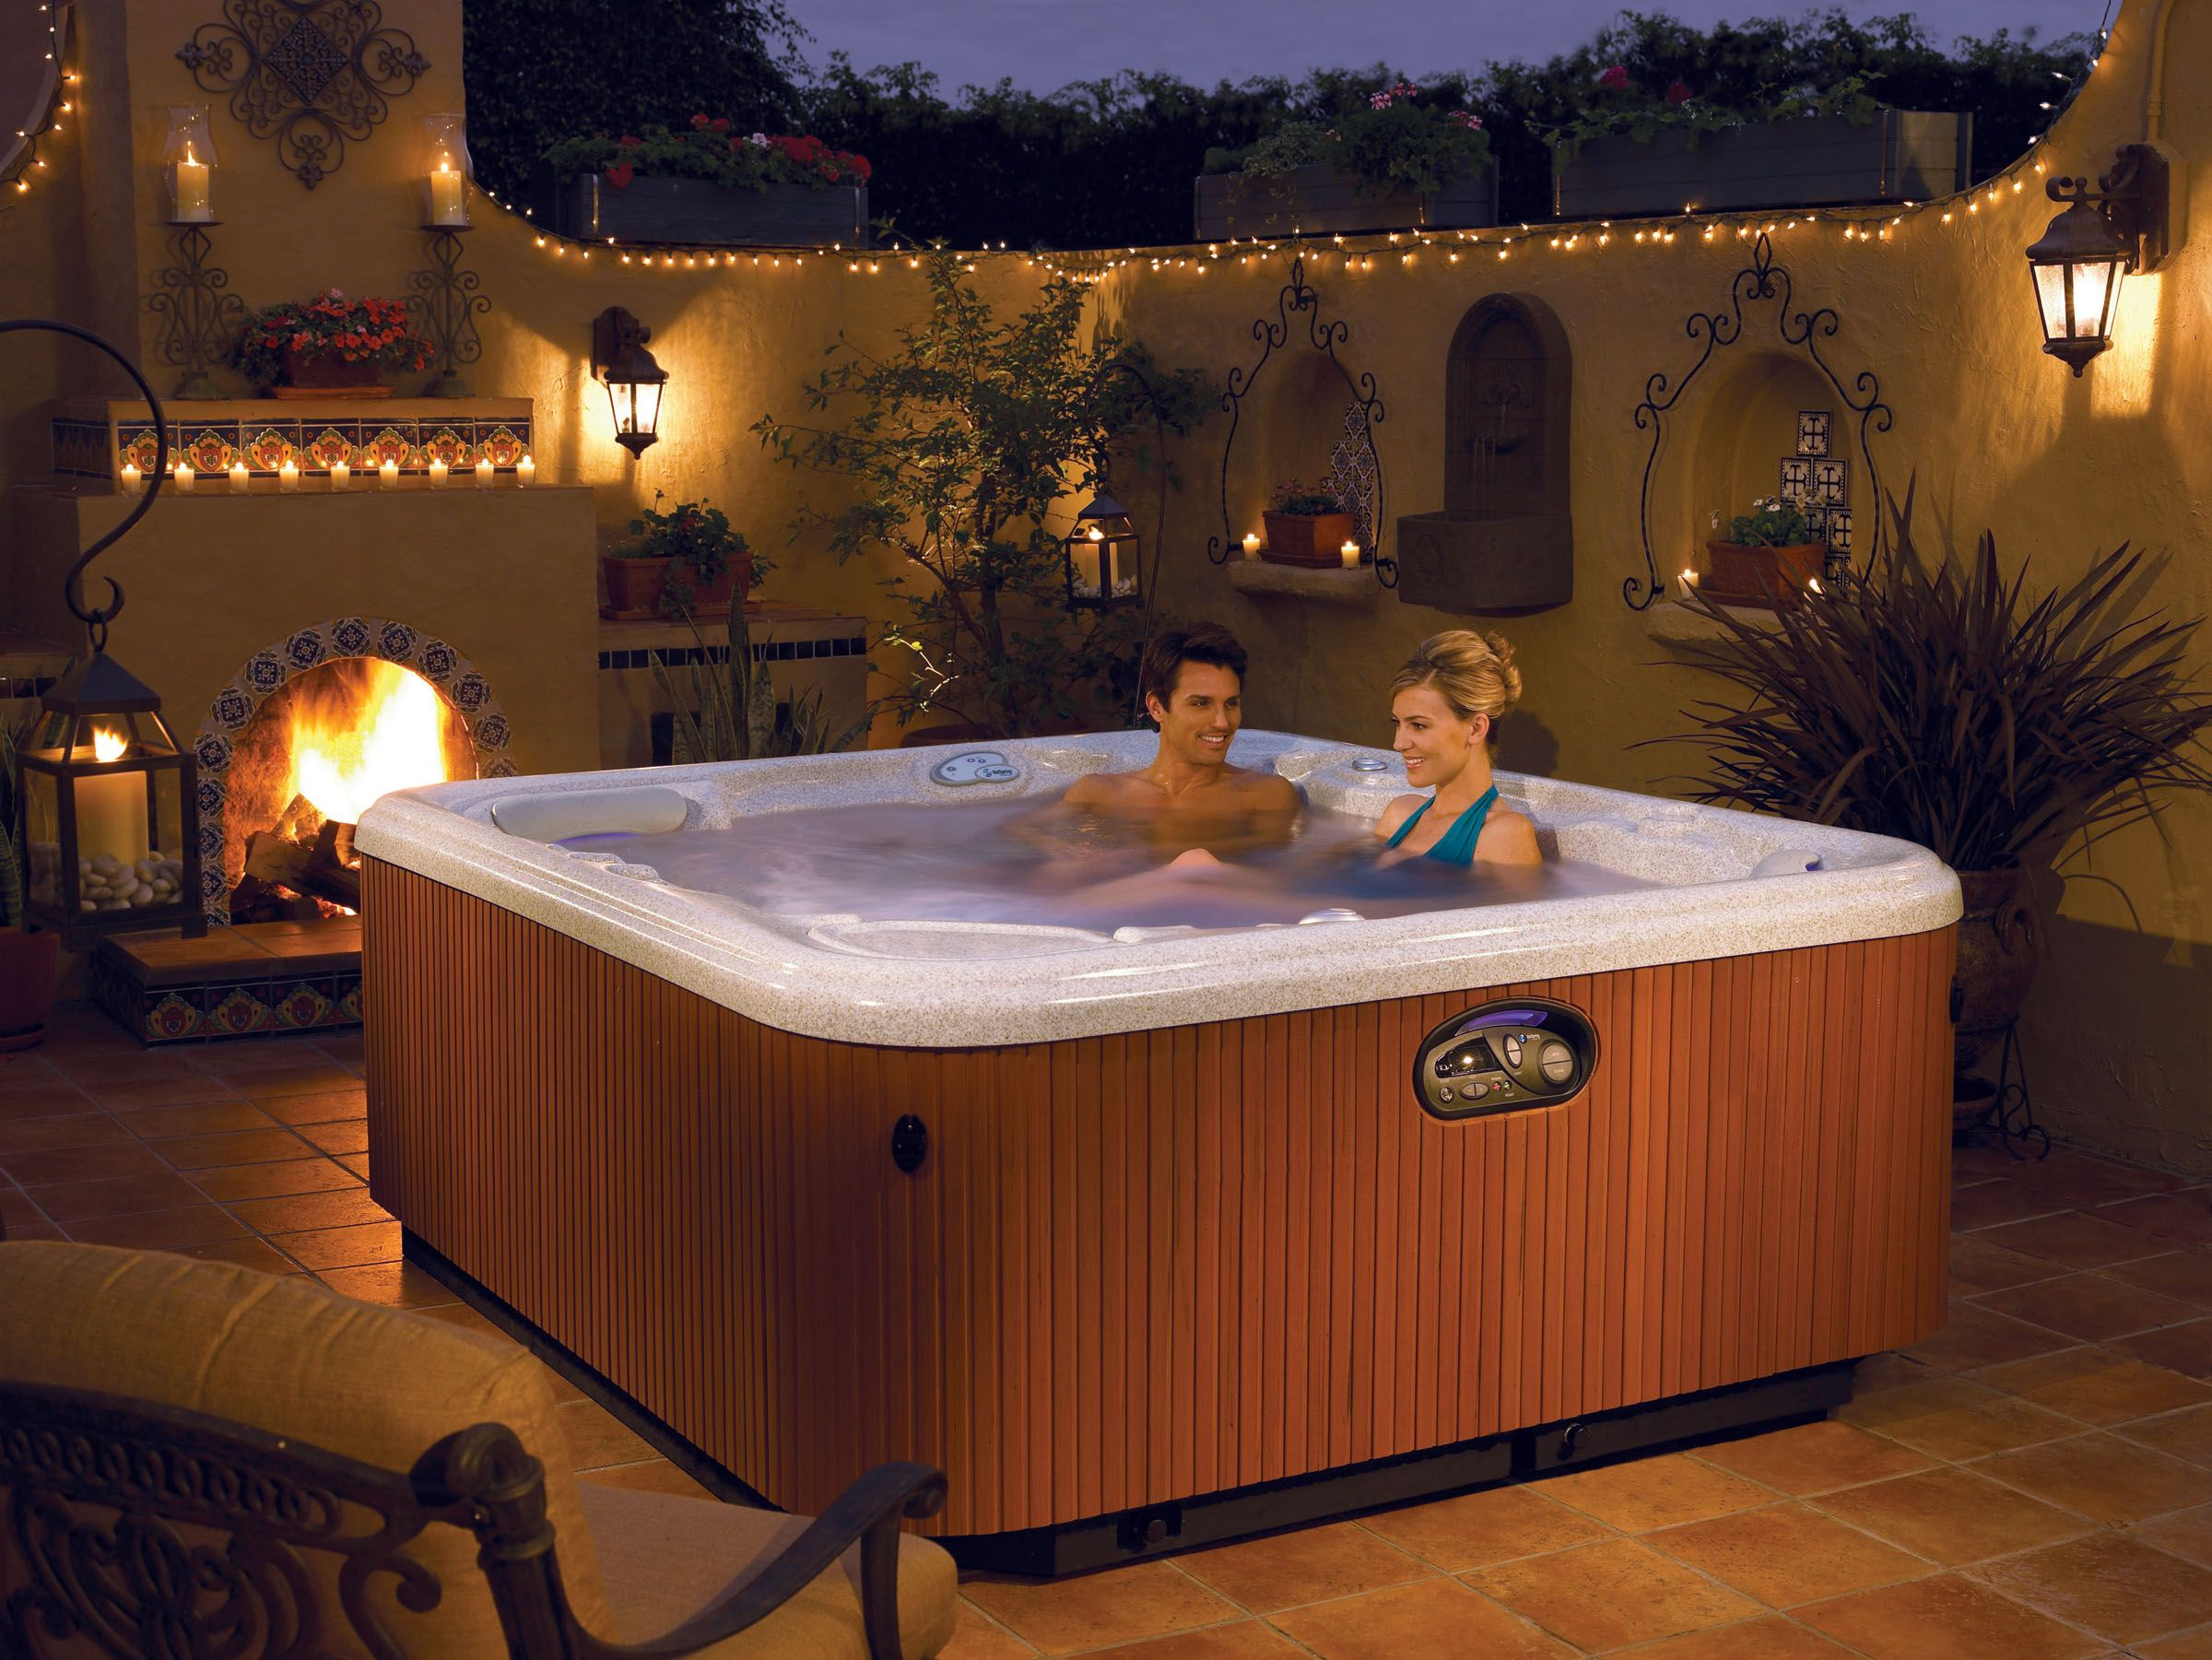 Love How You Can Quickly Easily And Cost Effectively Transform Any Bla Or Plain Space Like This Thermospa Or Hot Tub Into A Spa Hot Tubs Hot Tub Buy Hot Tub